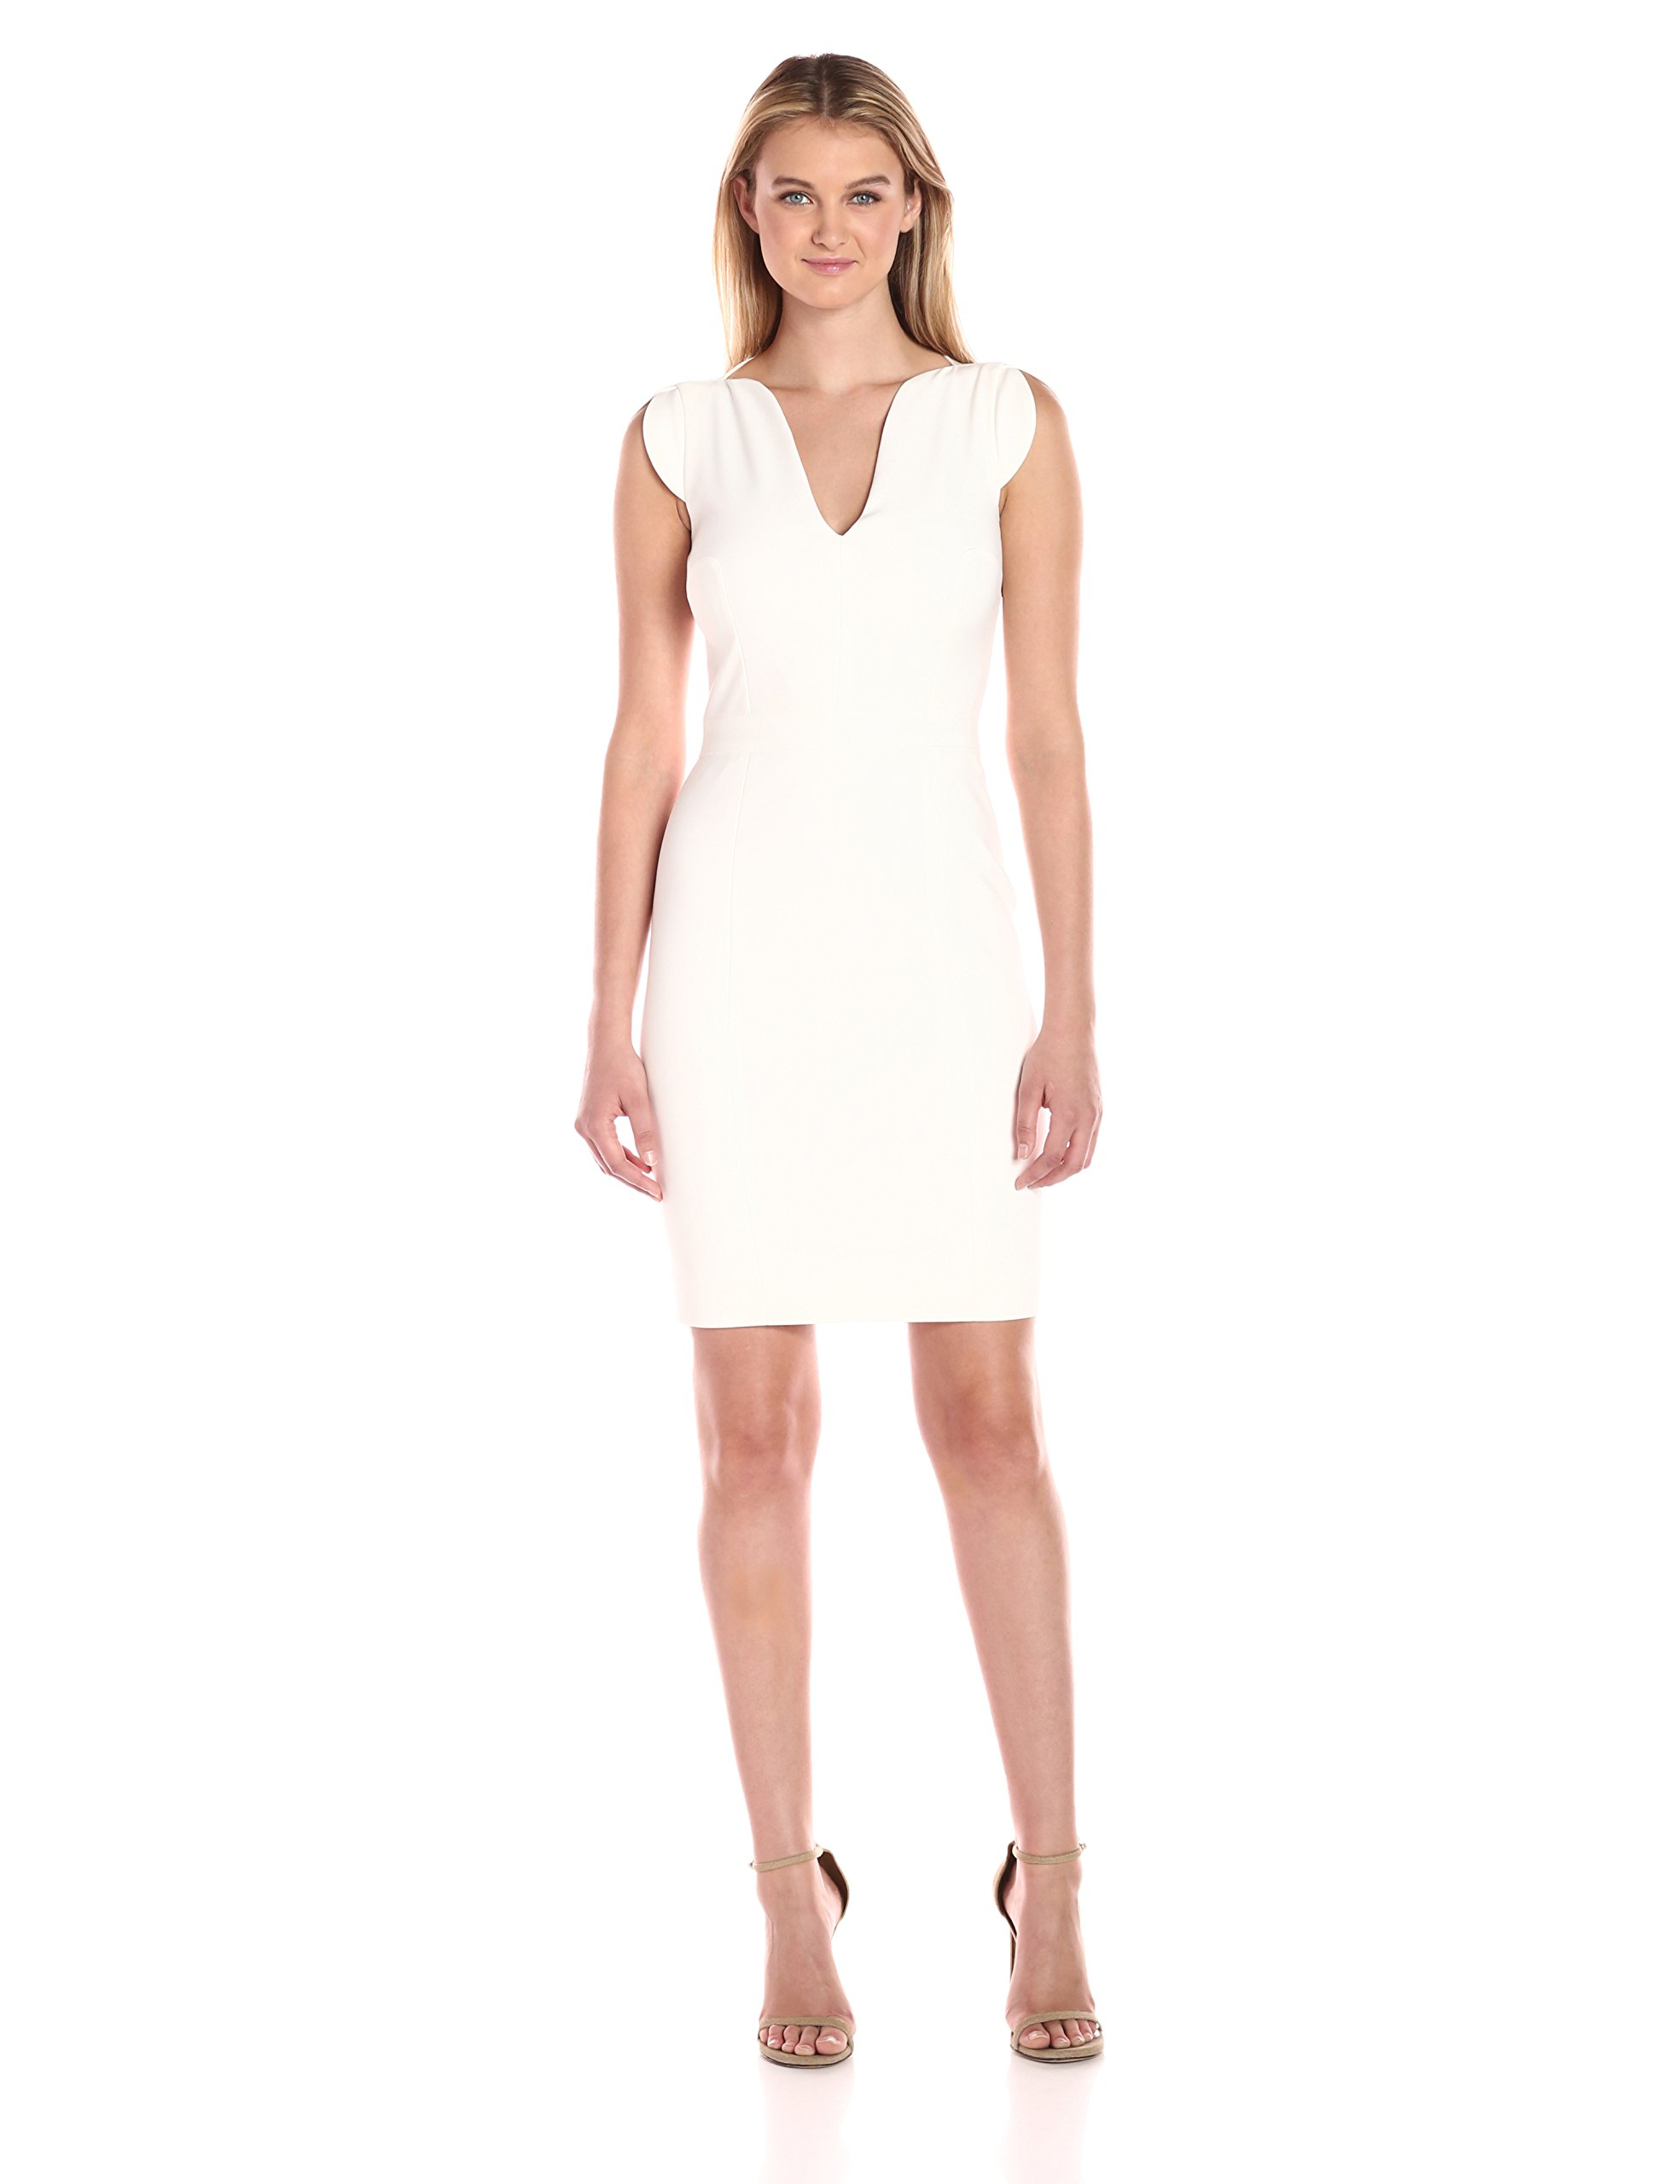 French Connection Women's Lolo Classic Stretch Bodycon Sleeveless Dress, Summer White, 10